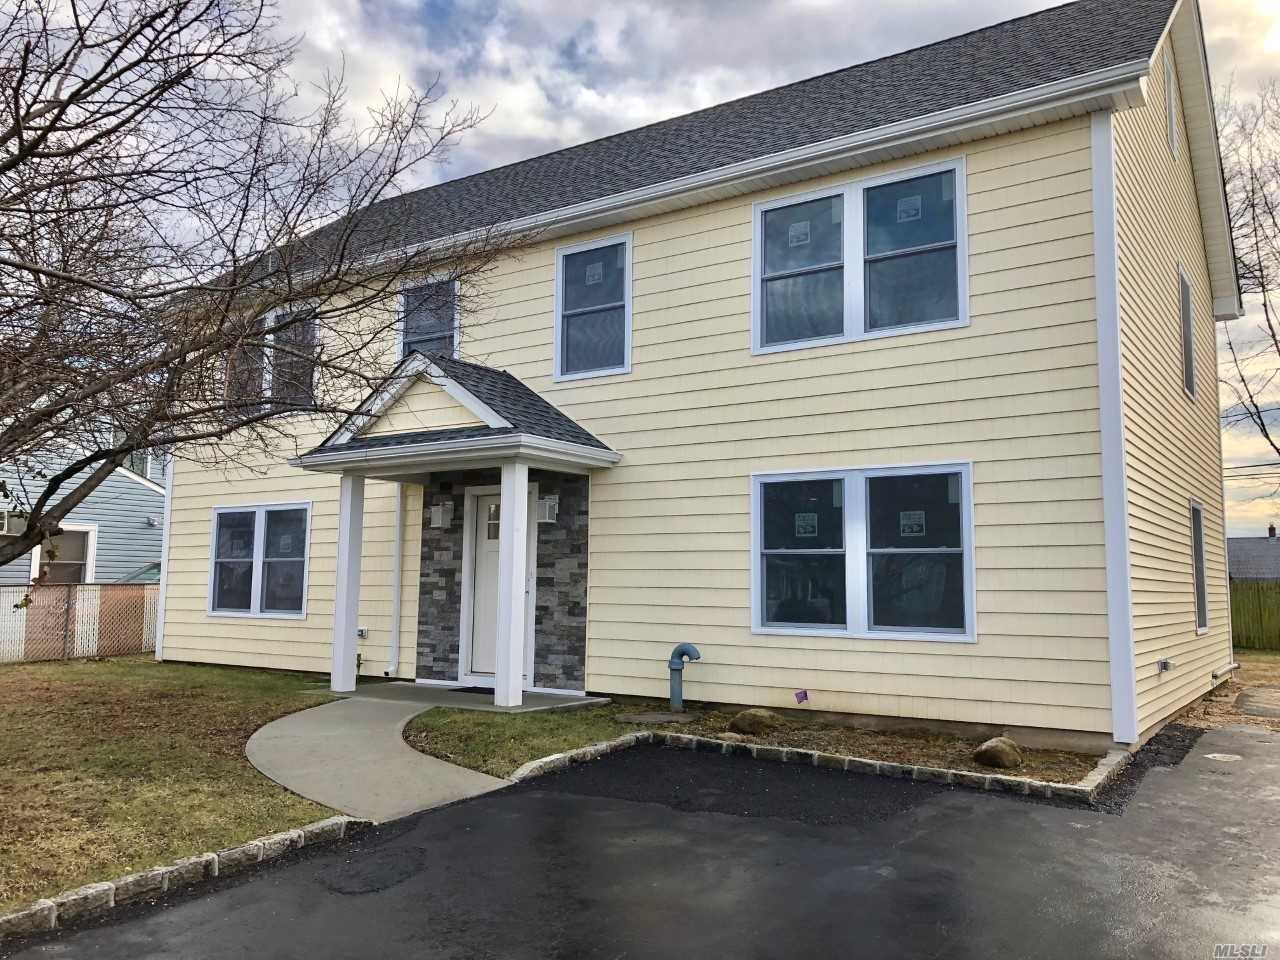 Bright & Stunning New Construction. 2600 Sf Colonial W/ 5 Br & 3.5 Ba, 8' Ceilings, Eik W/ Quartz & Samsung Ss Appliances, Spacious Living Rm, Fdr, Porcelain Tile, Hw Floors (Stain To Choice), Master Suite 2nd Fl Plus Br Suite On 1st Fl, Oversized Andersen Windows Throughout, 95% Energy Effic. Navien Combi-Boiler System, 5 Ton Rheem Cac, Life Gaf Archit. Roof, Low Taxes, Town Approval For Garage, Massive Attic Space, Buyer Finish 4 Up Br Floors To Taste. Many Options & Exceptional Top To Bottom.